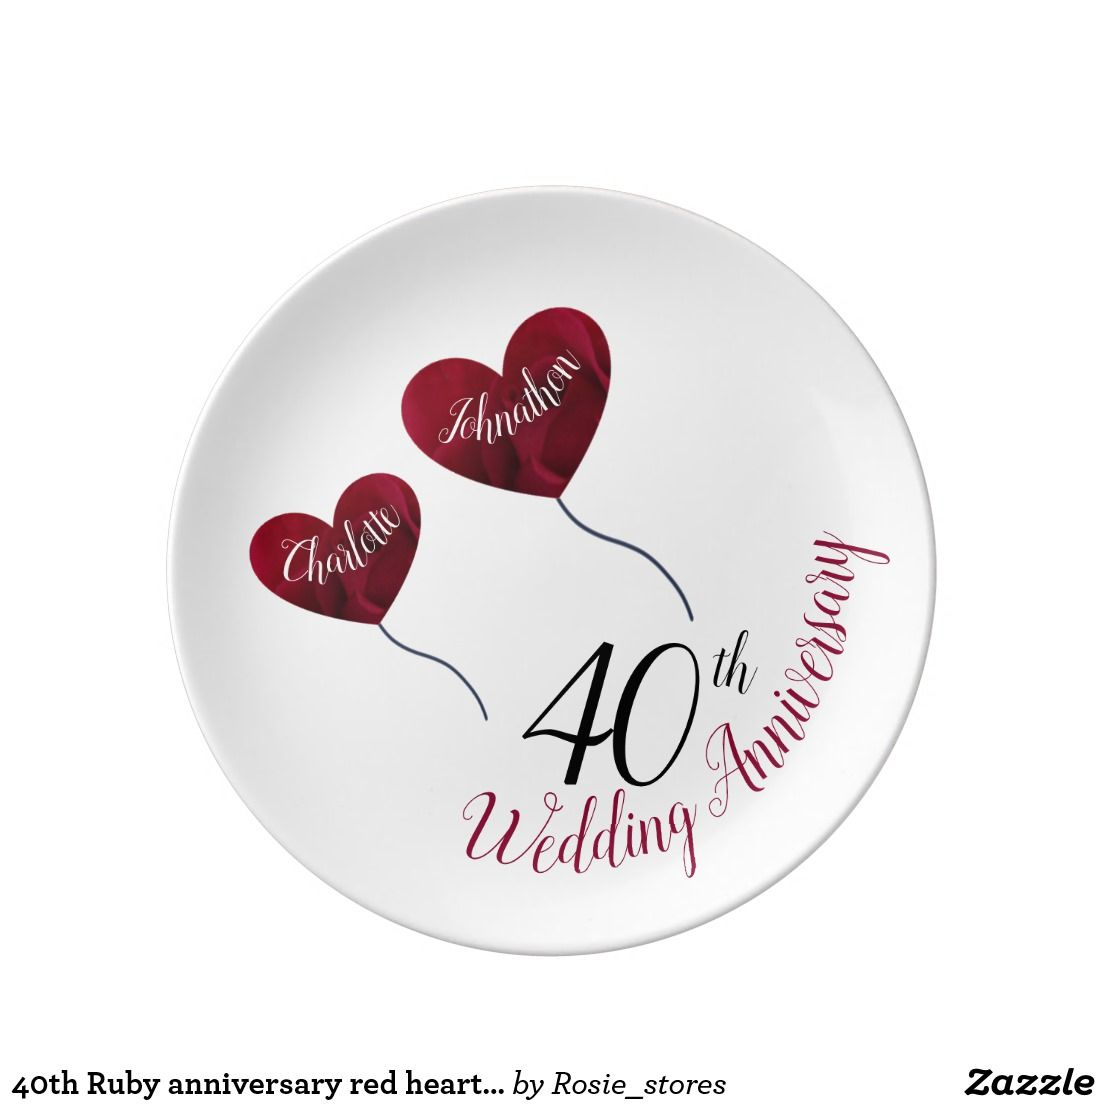 40th Ruby anniversary red heart balloons on white Plate